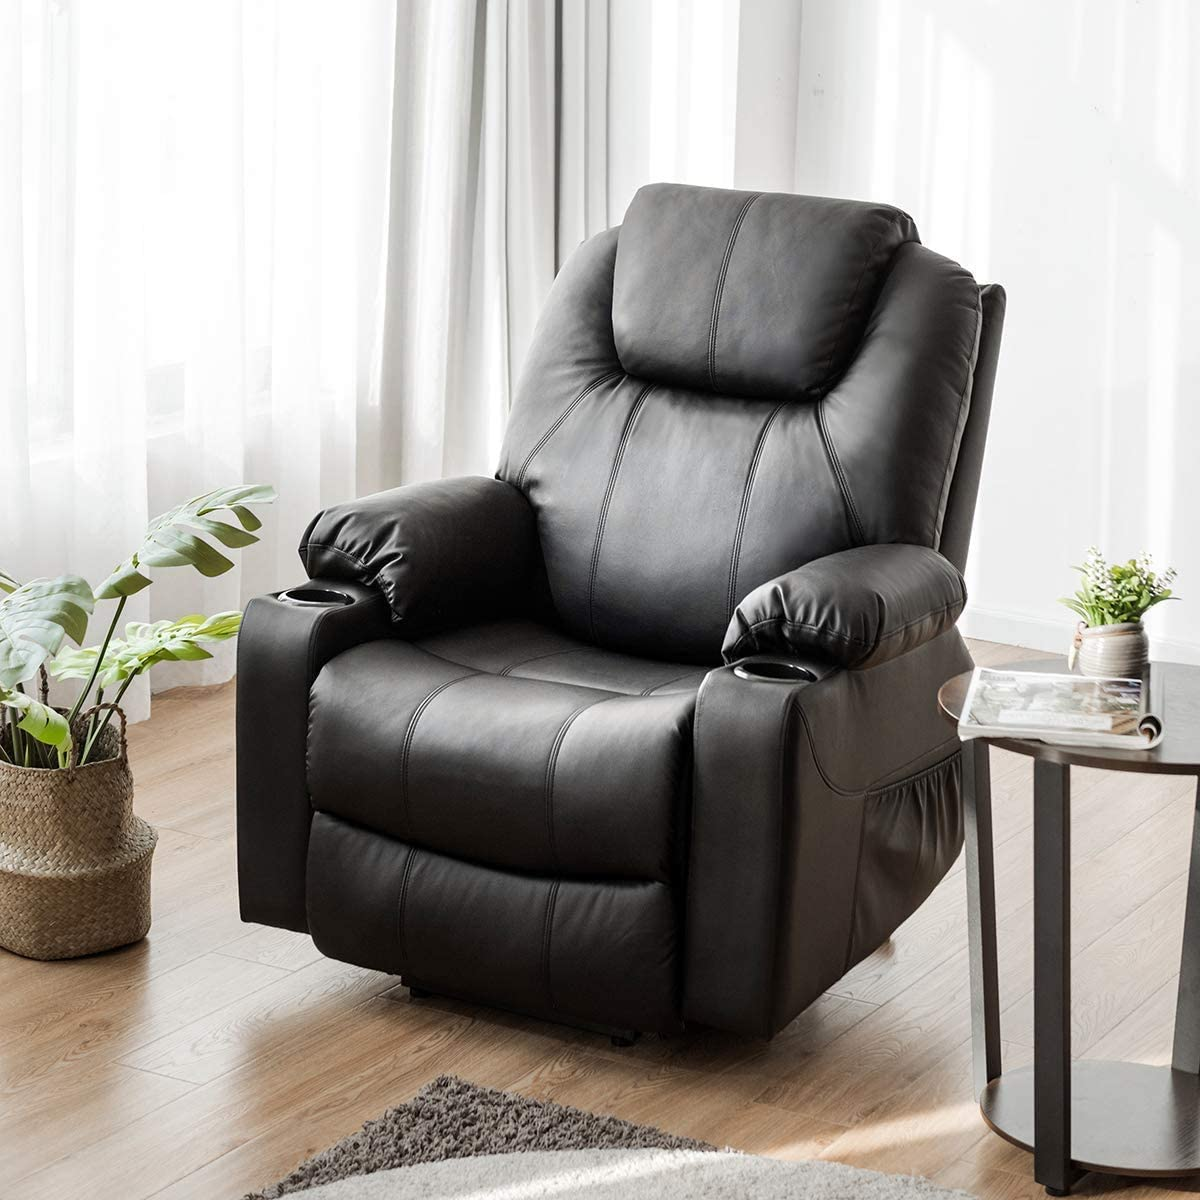 Giantex Power Lift Recliner Chair for Elderly, Faux Leather Electric Recliner w Massage and Heating, 3 Positions, Side Pockets and Cup Holders, USB Ports, Remote Control, Motorized Home Theater Seat